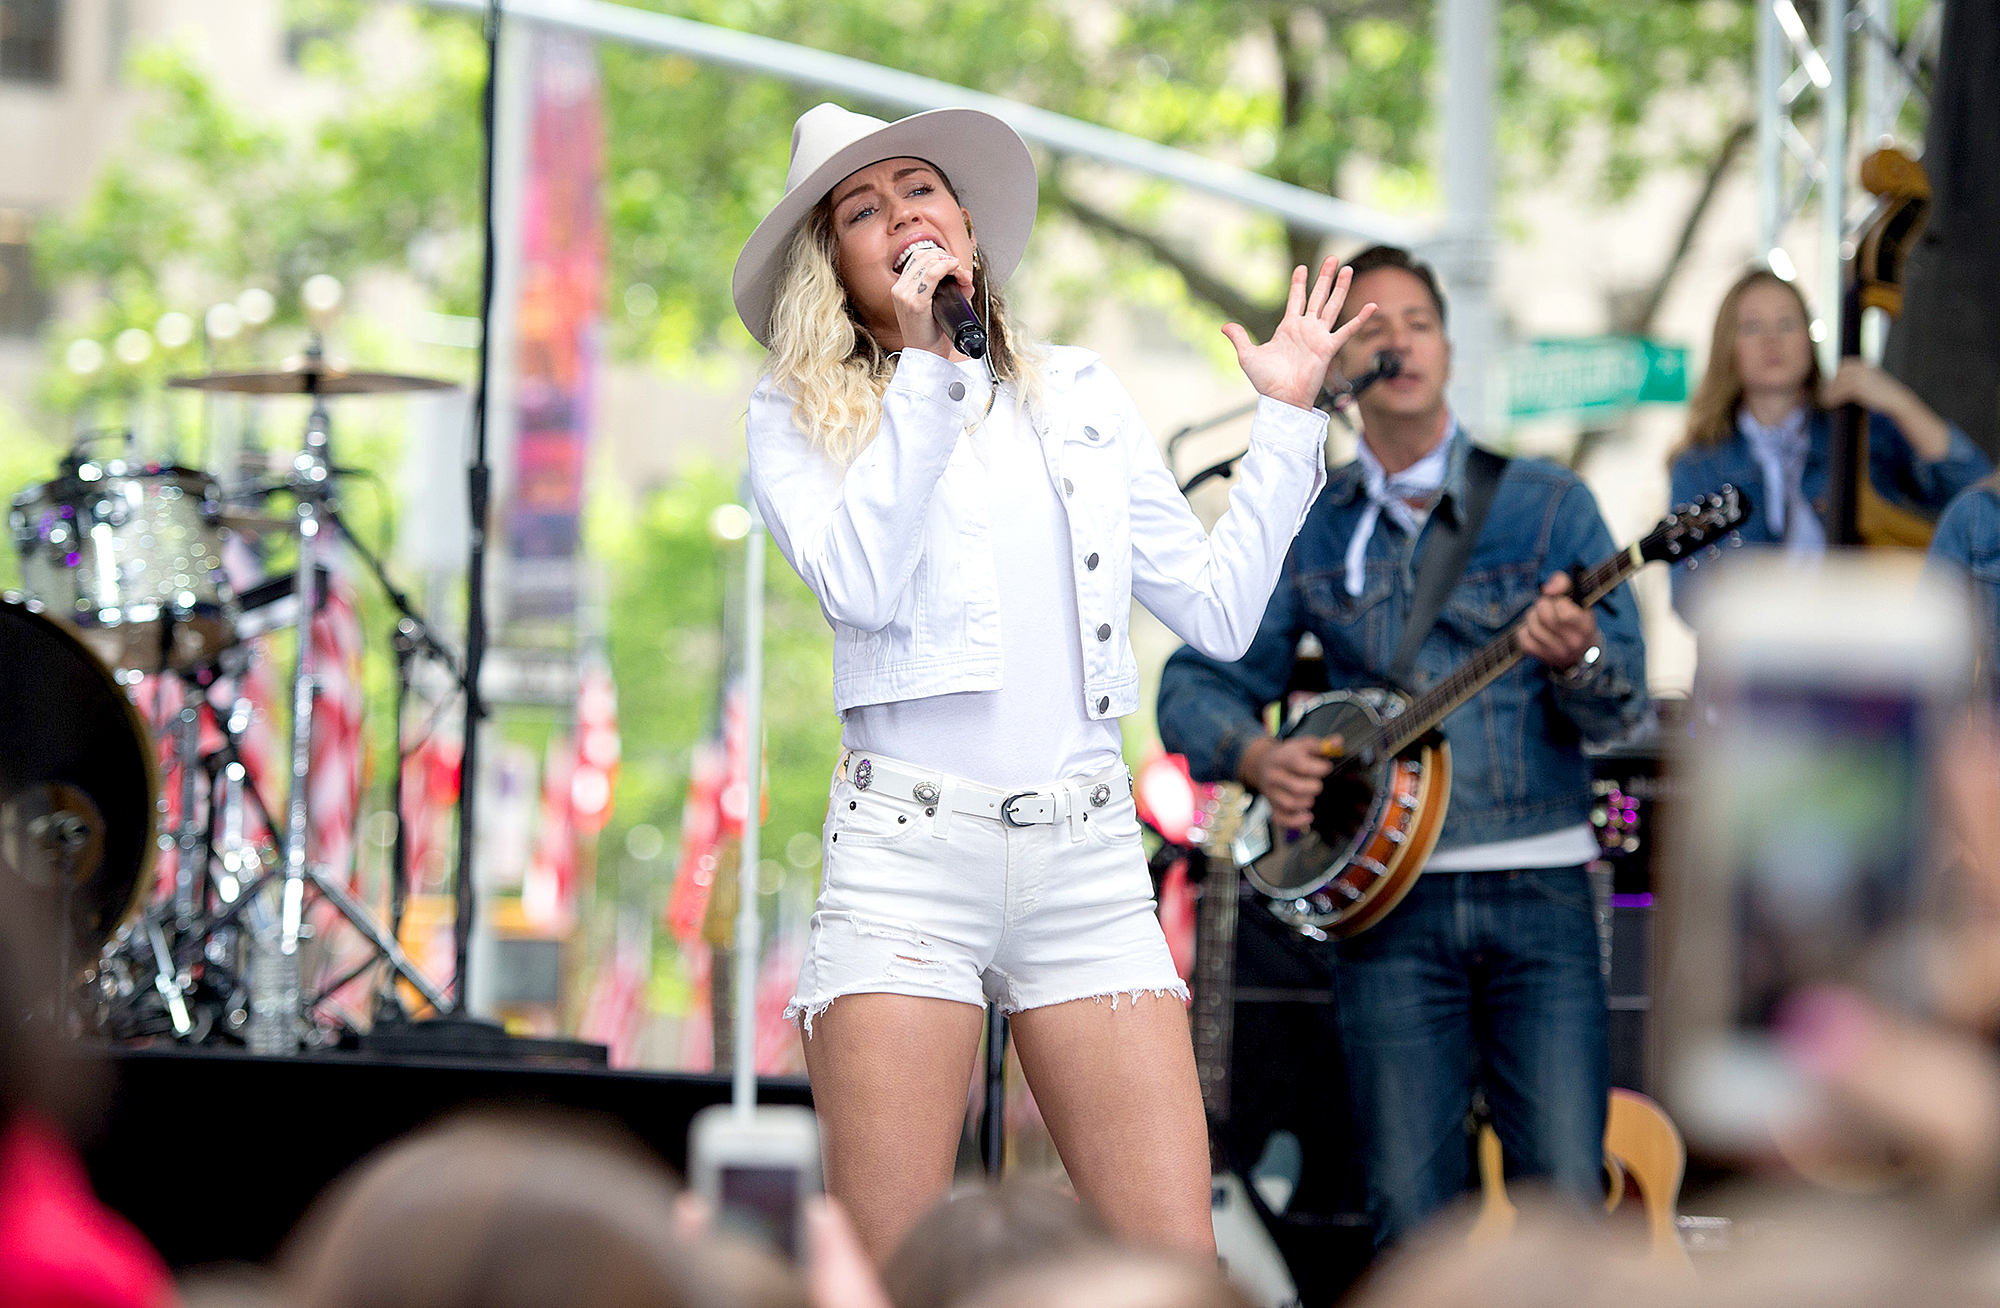 miley-cyrus-2017-performs-today-show - In 2017, Cyrus dropped her Younger Now record and paid tribute to her favorite city, Malibu, with a song named after the beach town. She also rocked a light blonde hairdo.